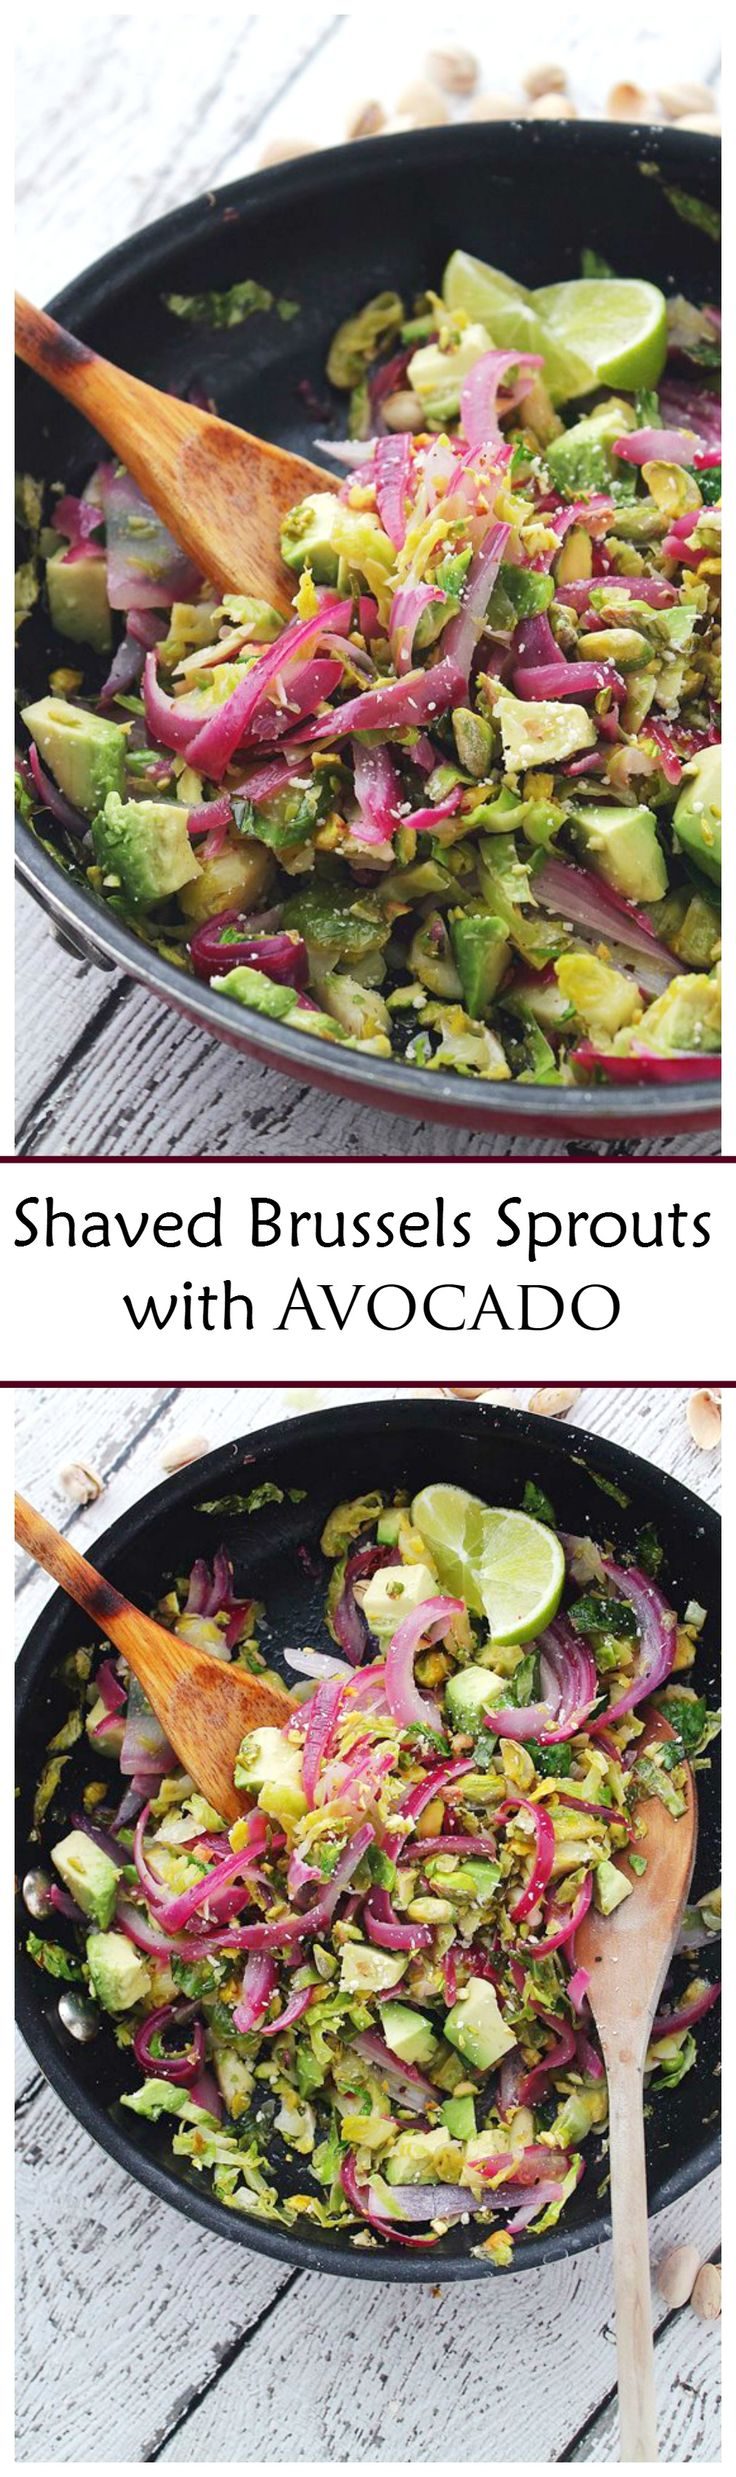 Hearty, healthy, delicious sauteed salad packed with Shaved Brussels Sprouts, Red Onions, Avocado, Pistachios and a splash of lime juice.